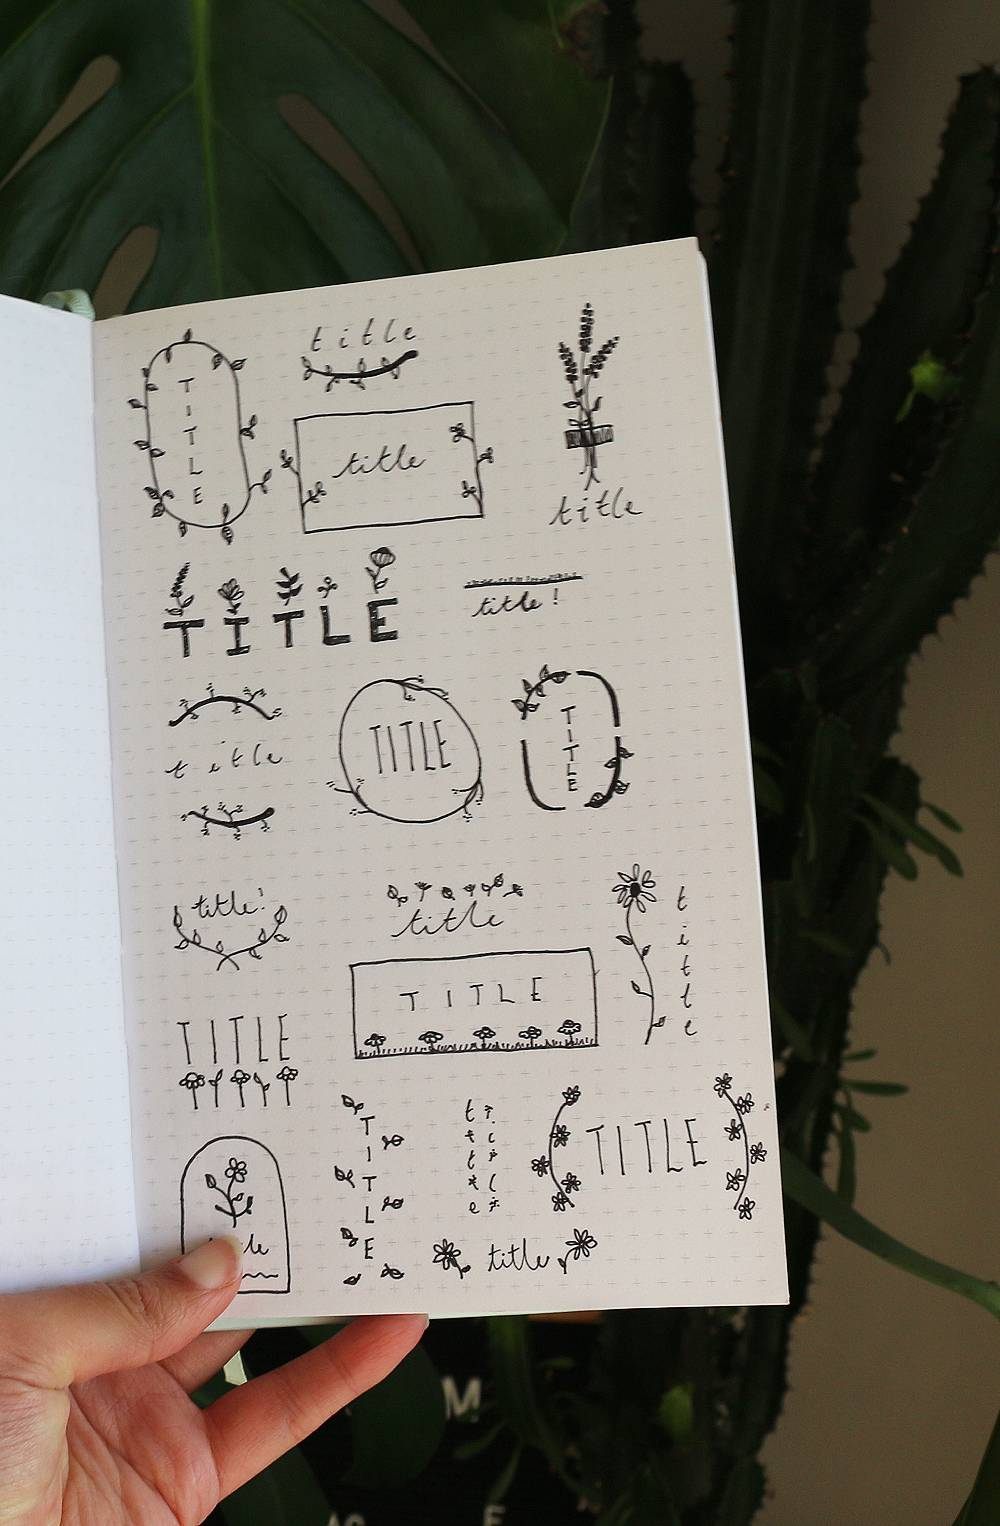 Floral bullet journal title ideas that are easy to recreate, but cute